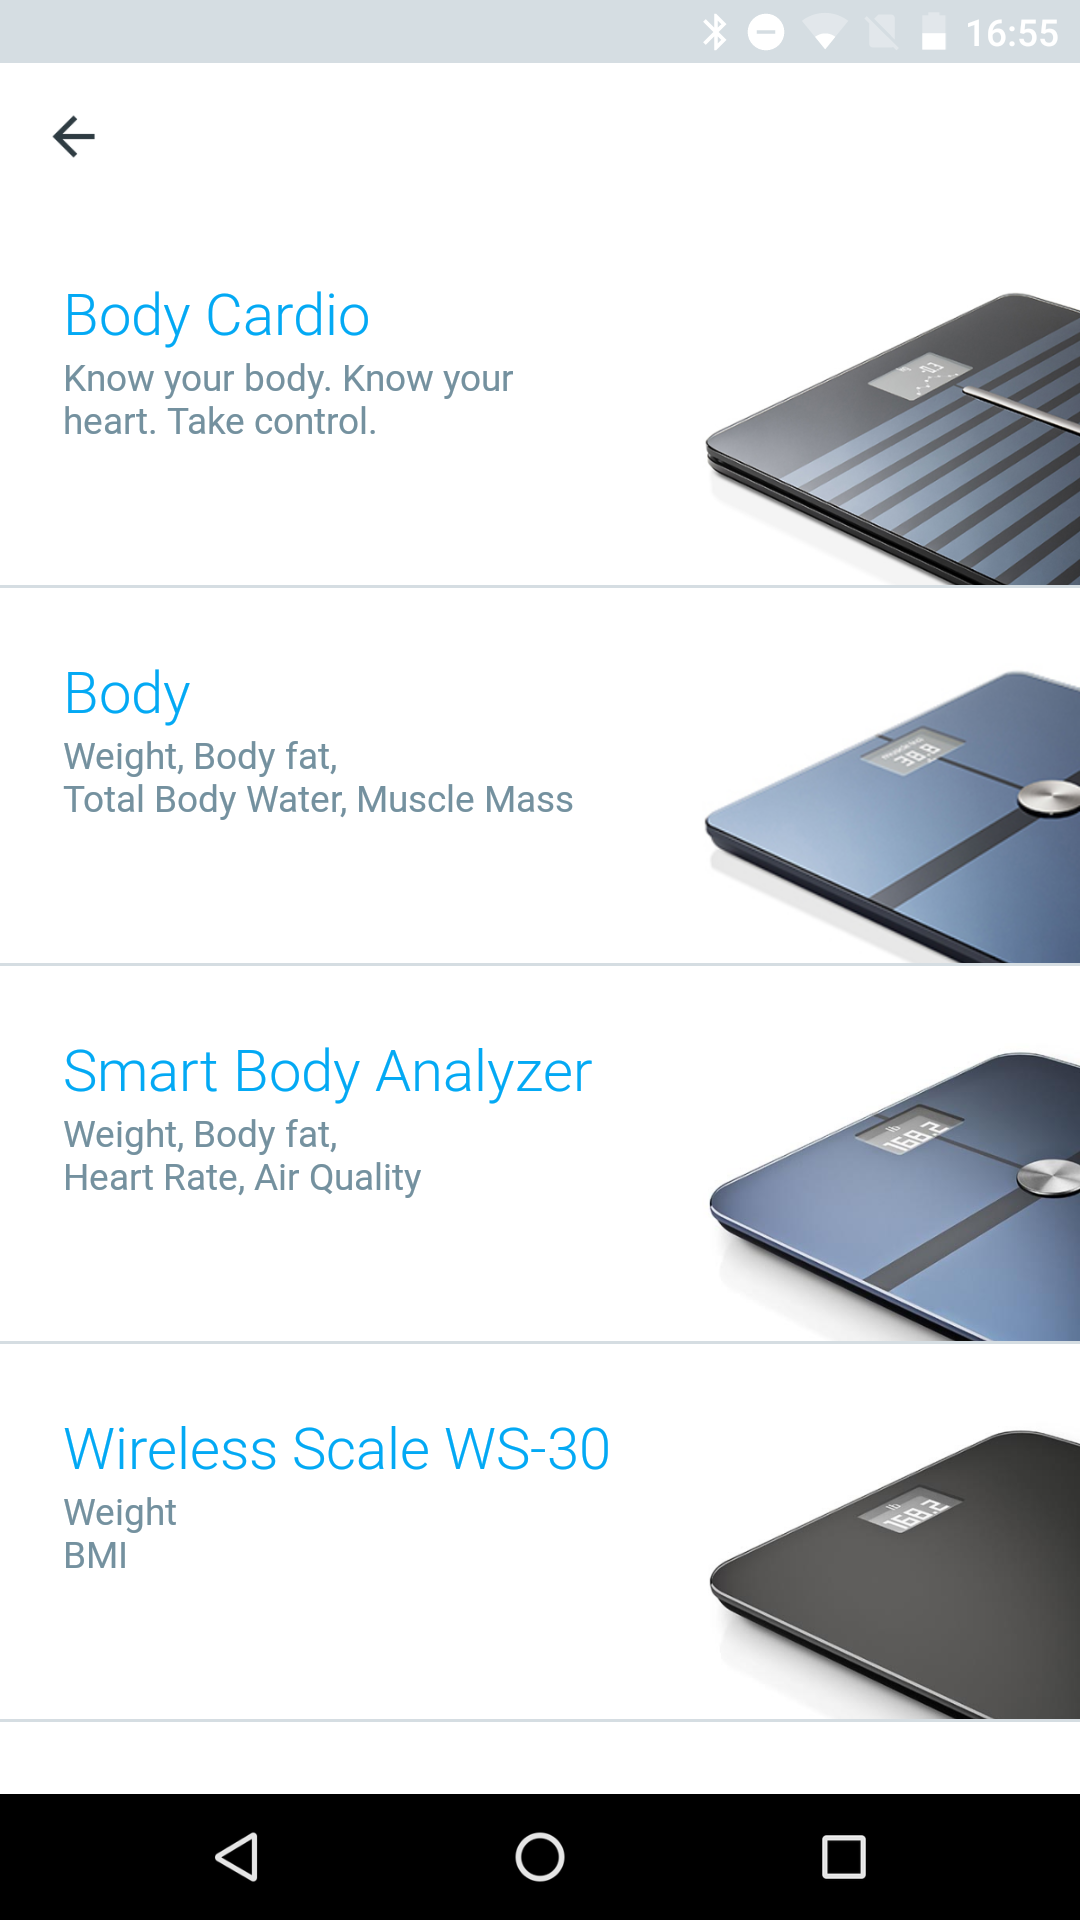 withings-body-cardio-setup-5